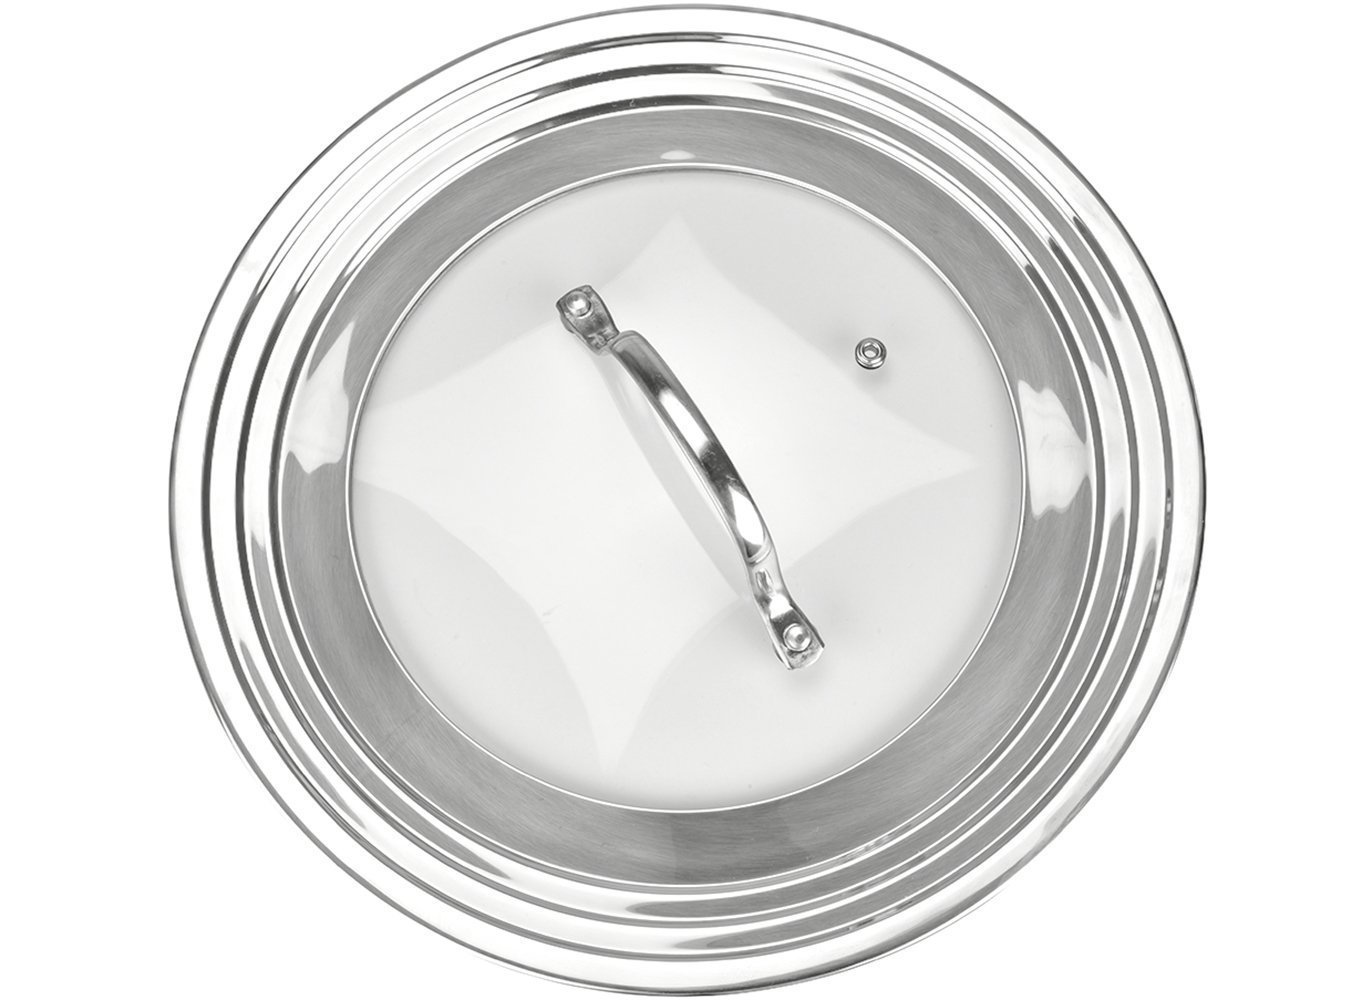 Universal Lid Stainless Steel 18/8 and Tempered Glass, Fits All 7'' to 12'' Pots and Pans, Replacement Frying Pan Cover and Cookware Lids by Modern Innovations (Image #2)